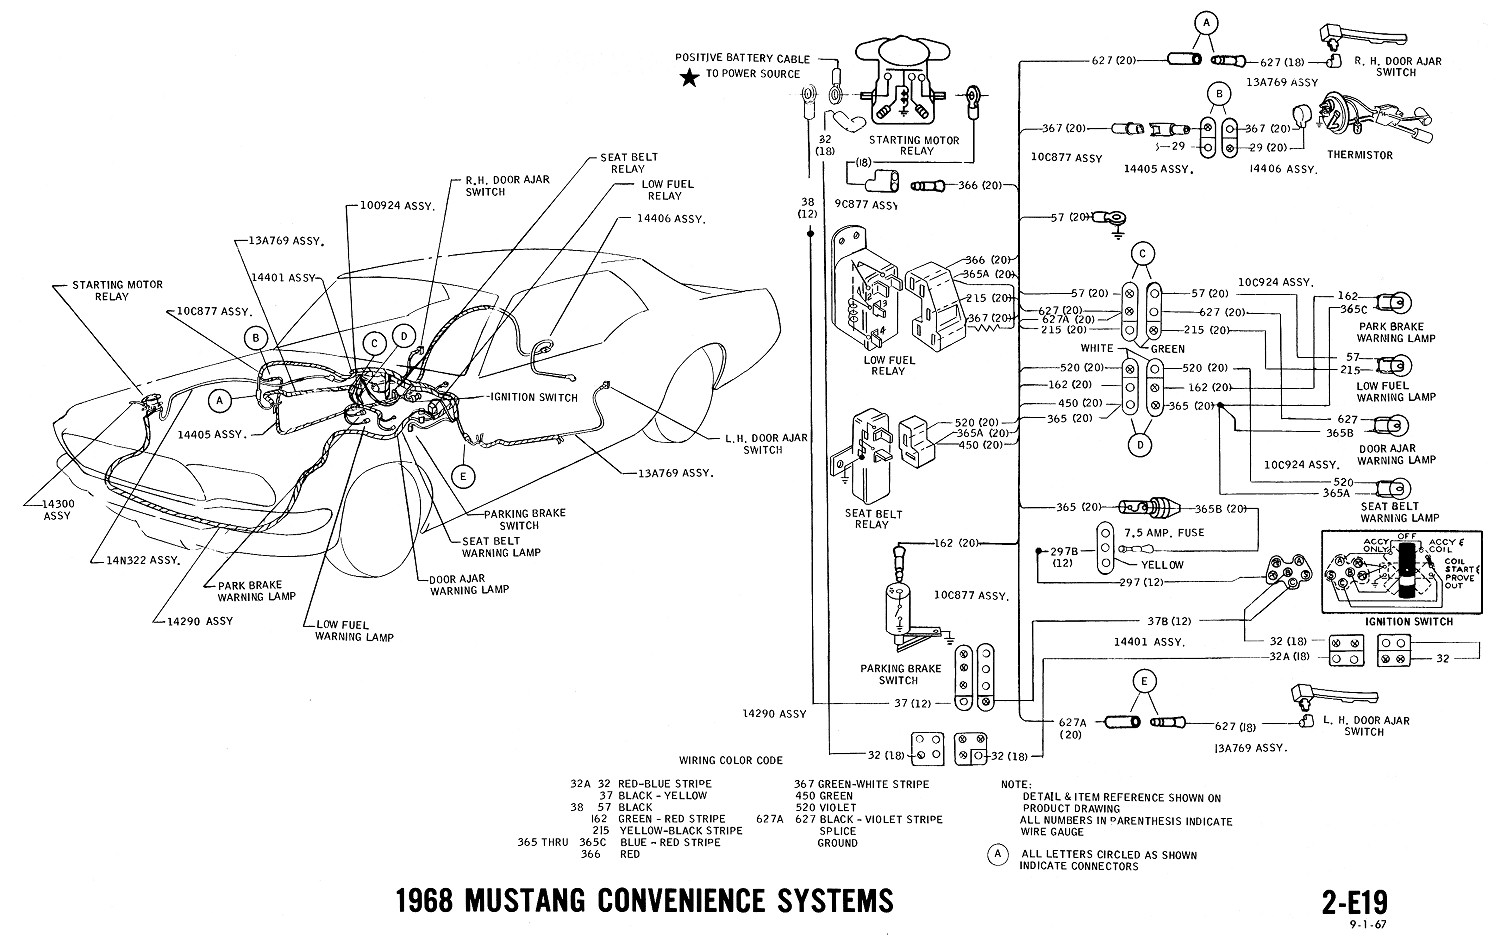 E19 1968 mustang wiring diagrams evolving software 1966 mustang alternator wiring diagram at mifinder.co